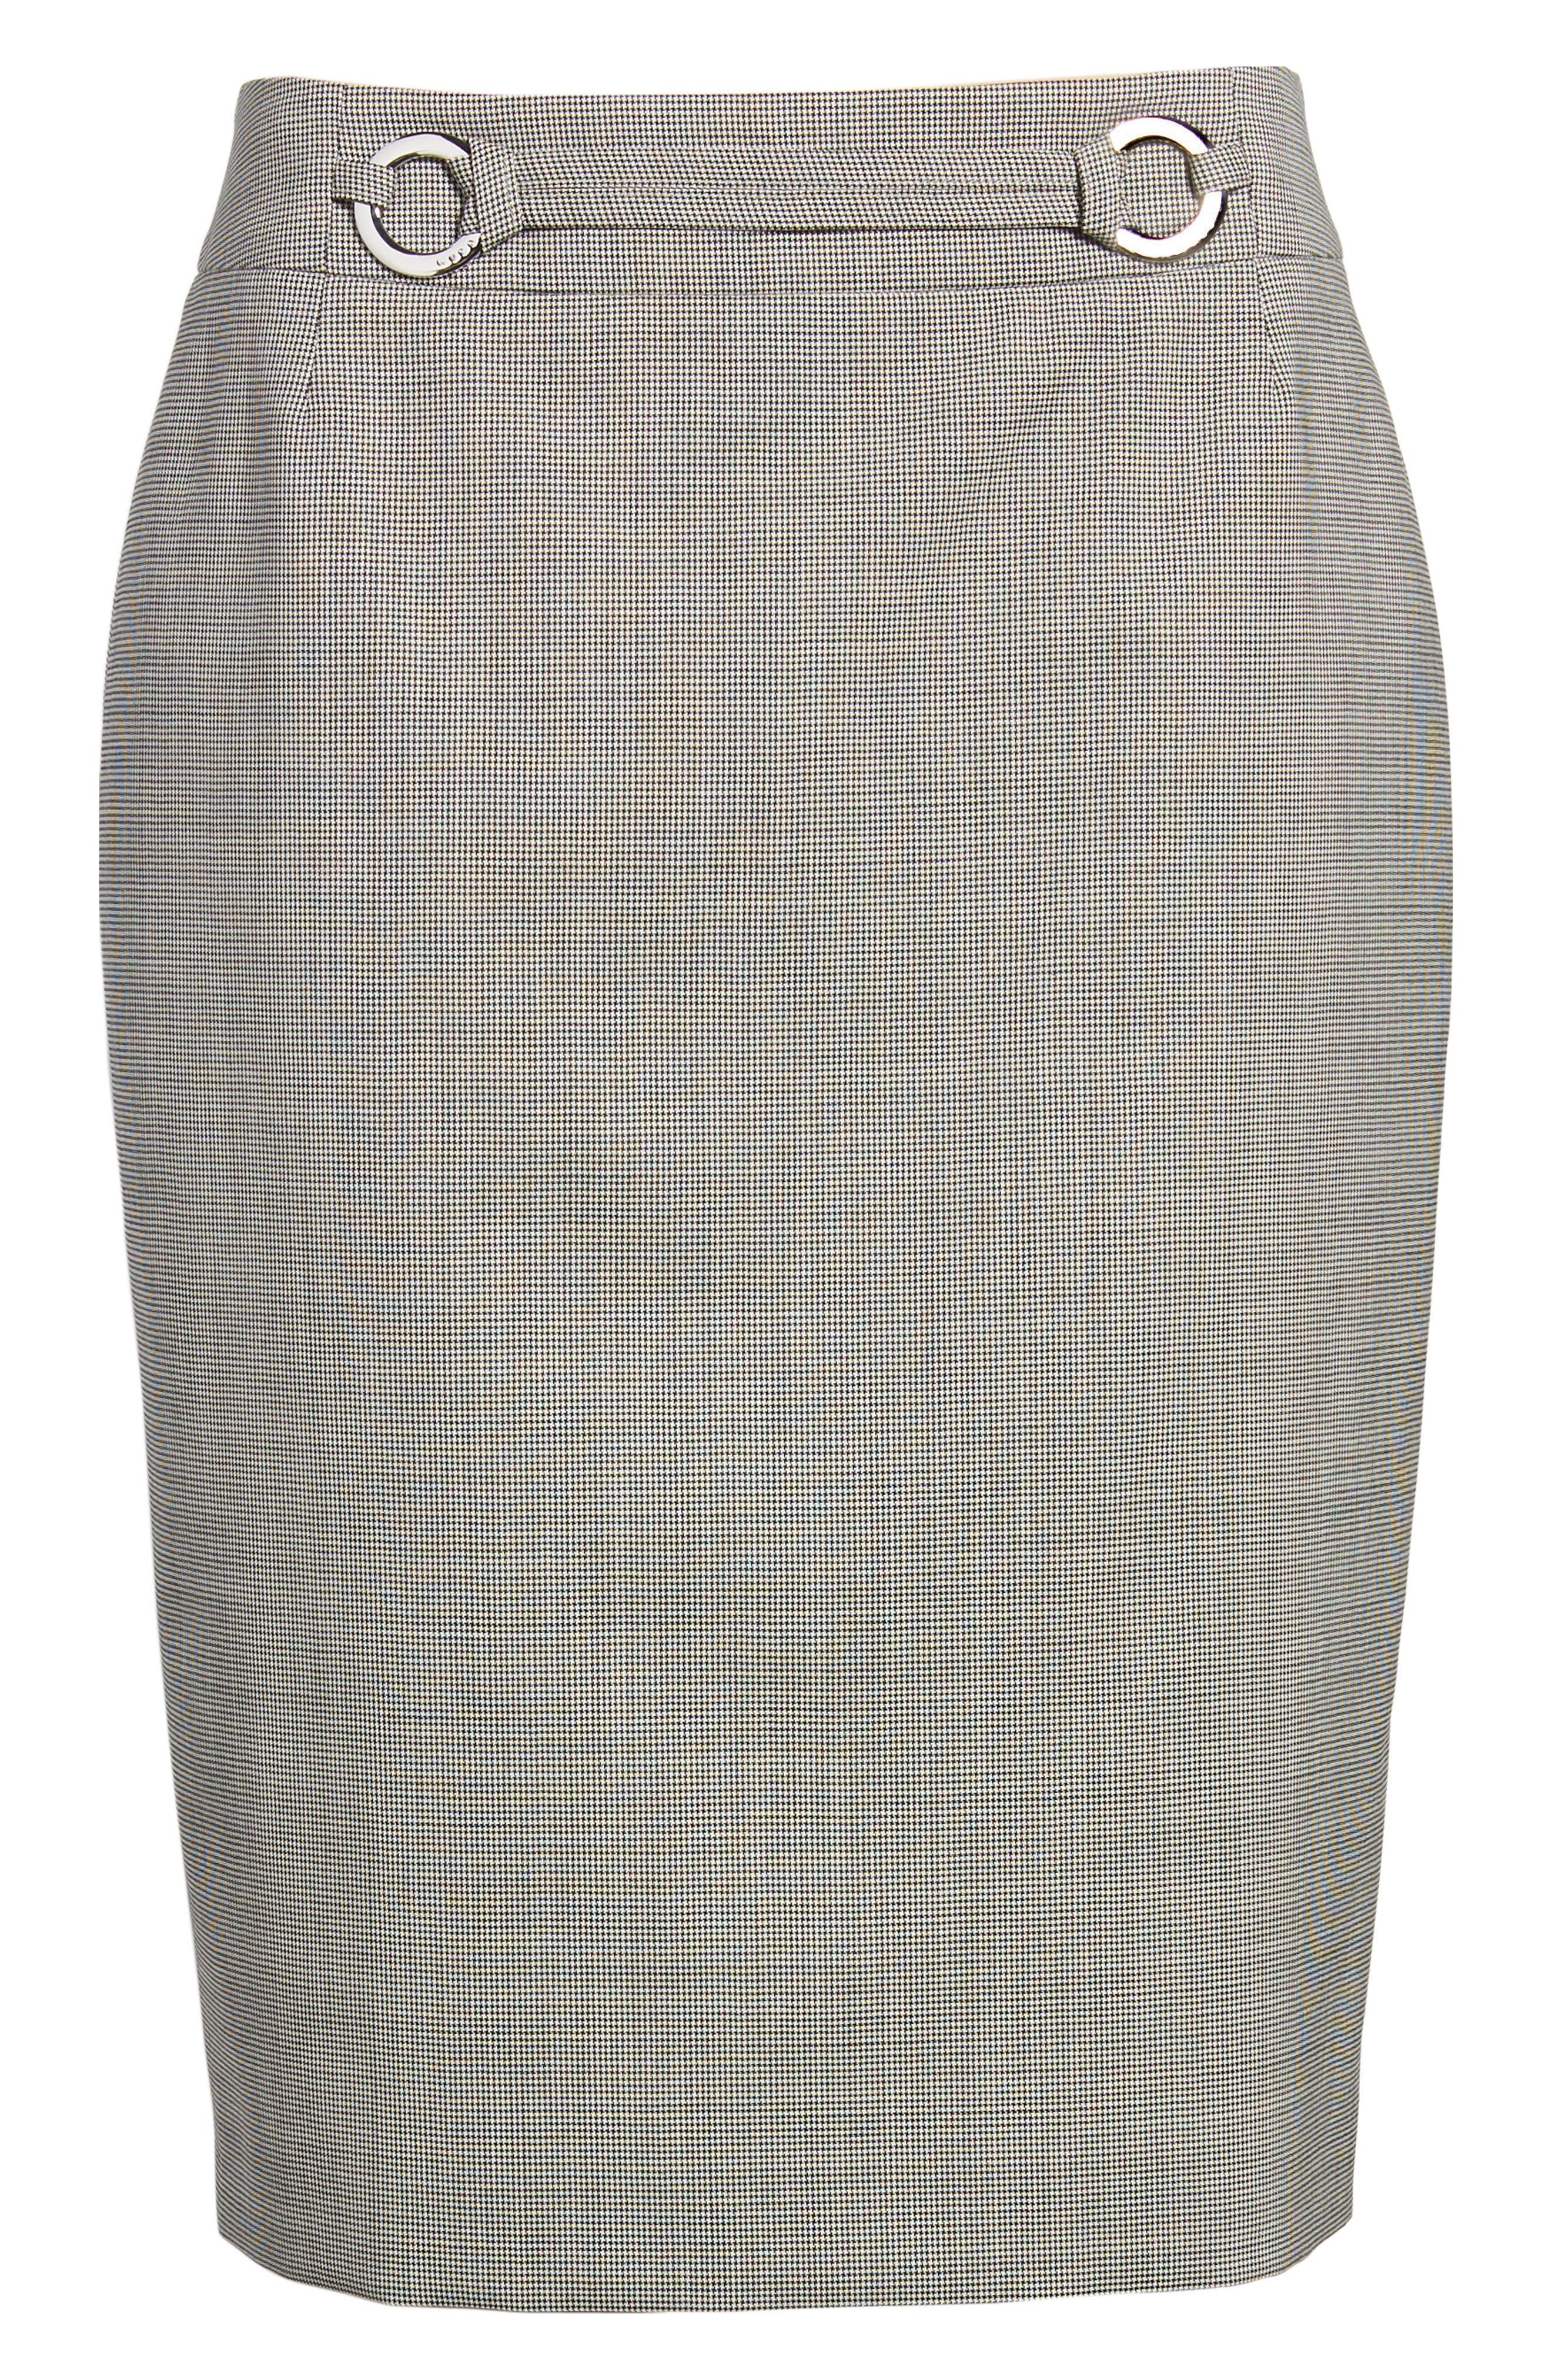 Vavilla Stretch Wool Suit Skirt,                             Alternate thumbnail 6, color,                             006